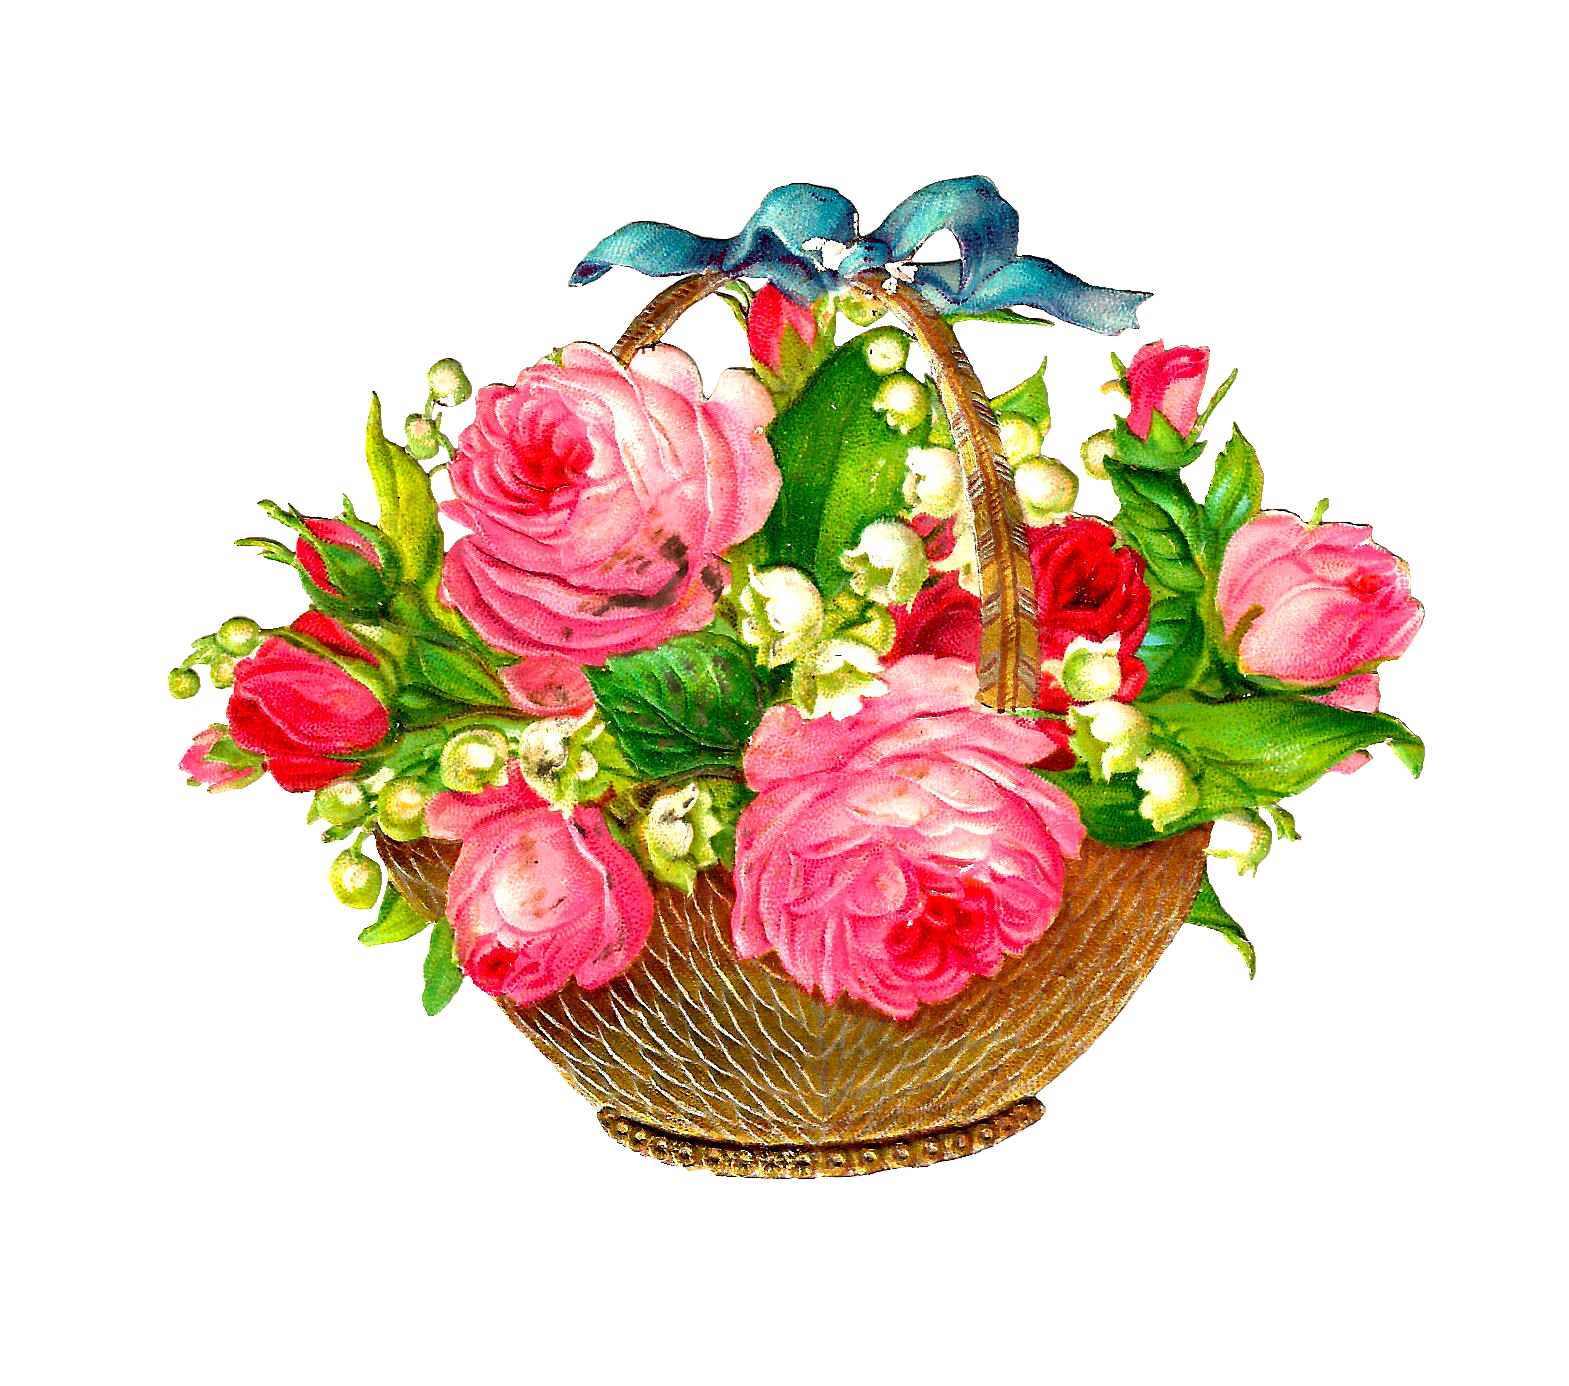 Clipart flower basket banner free download Antique Images: Free Flower Basket Graphic: Pink Roses and Lily of ... banner free download